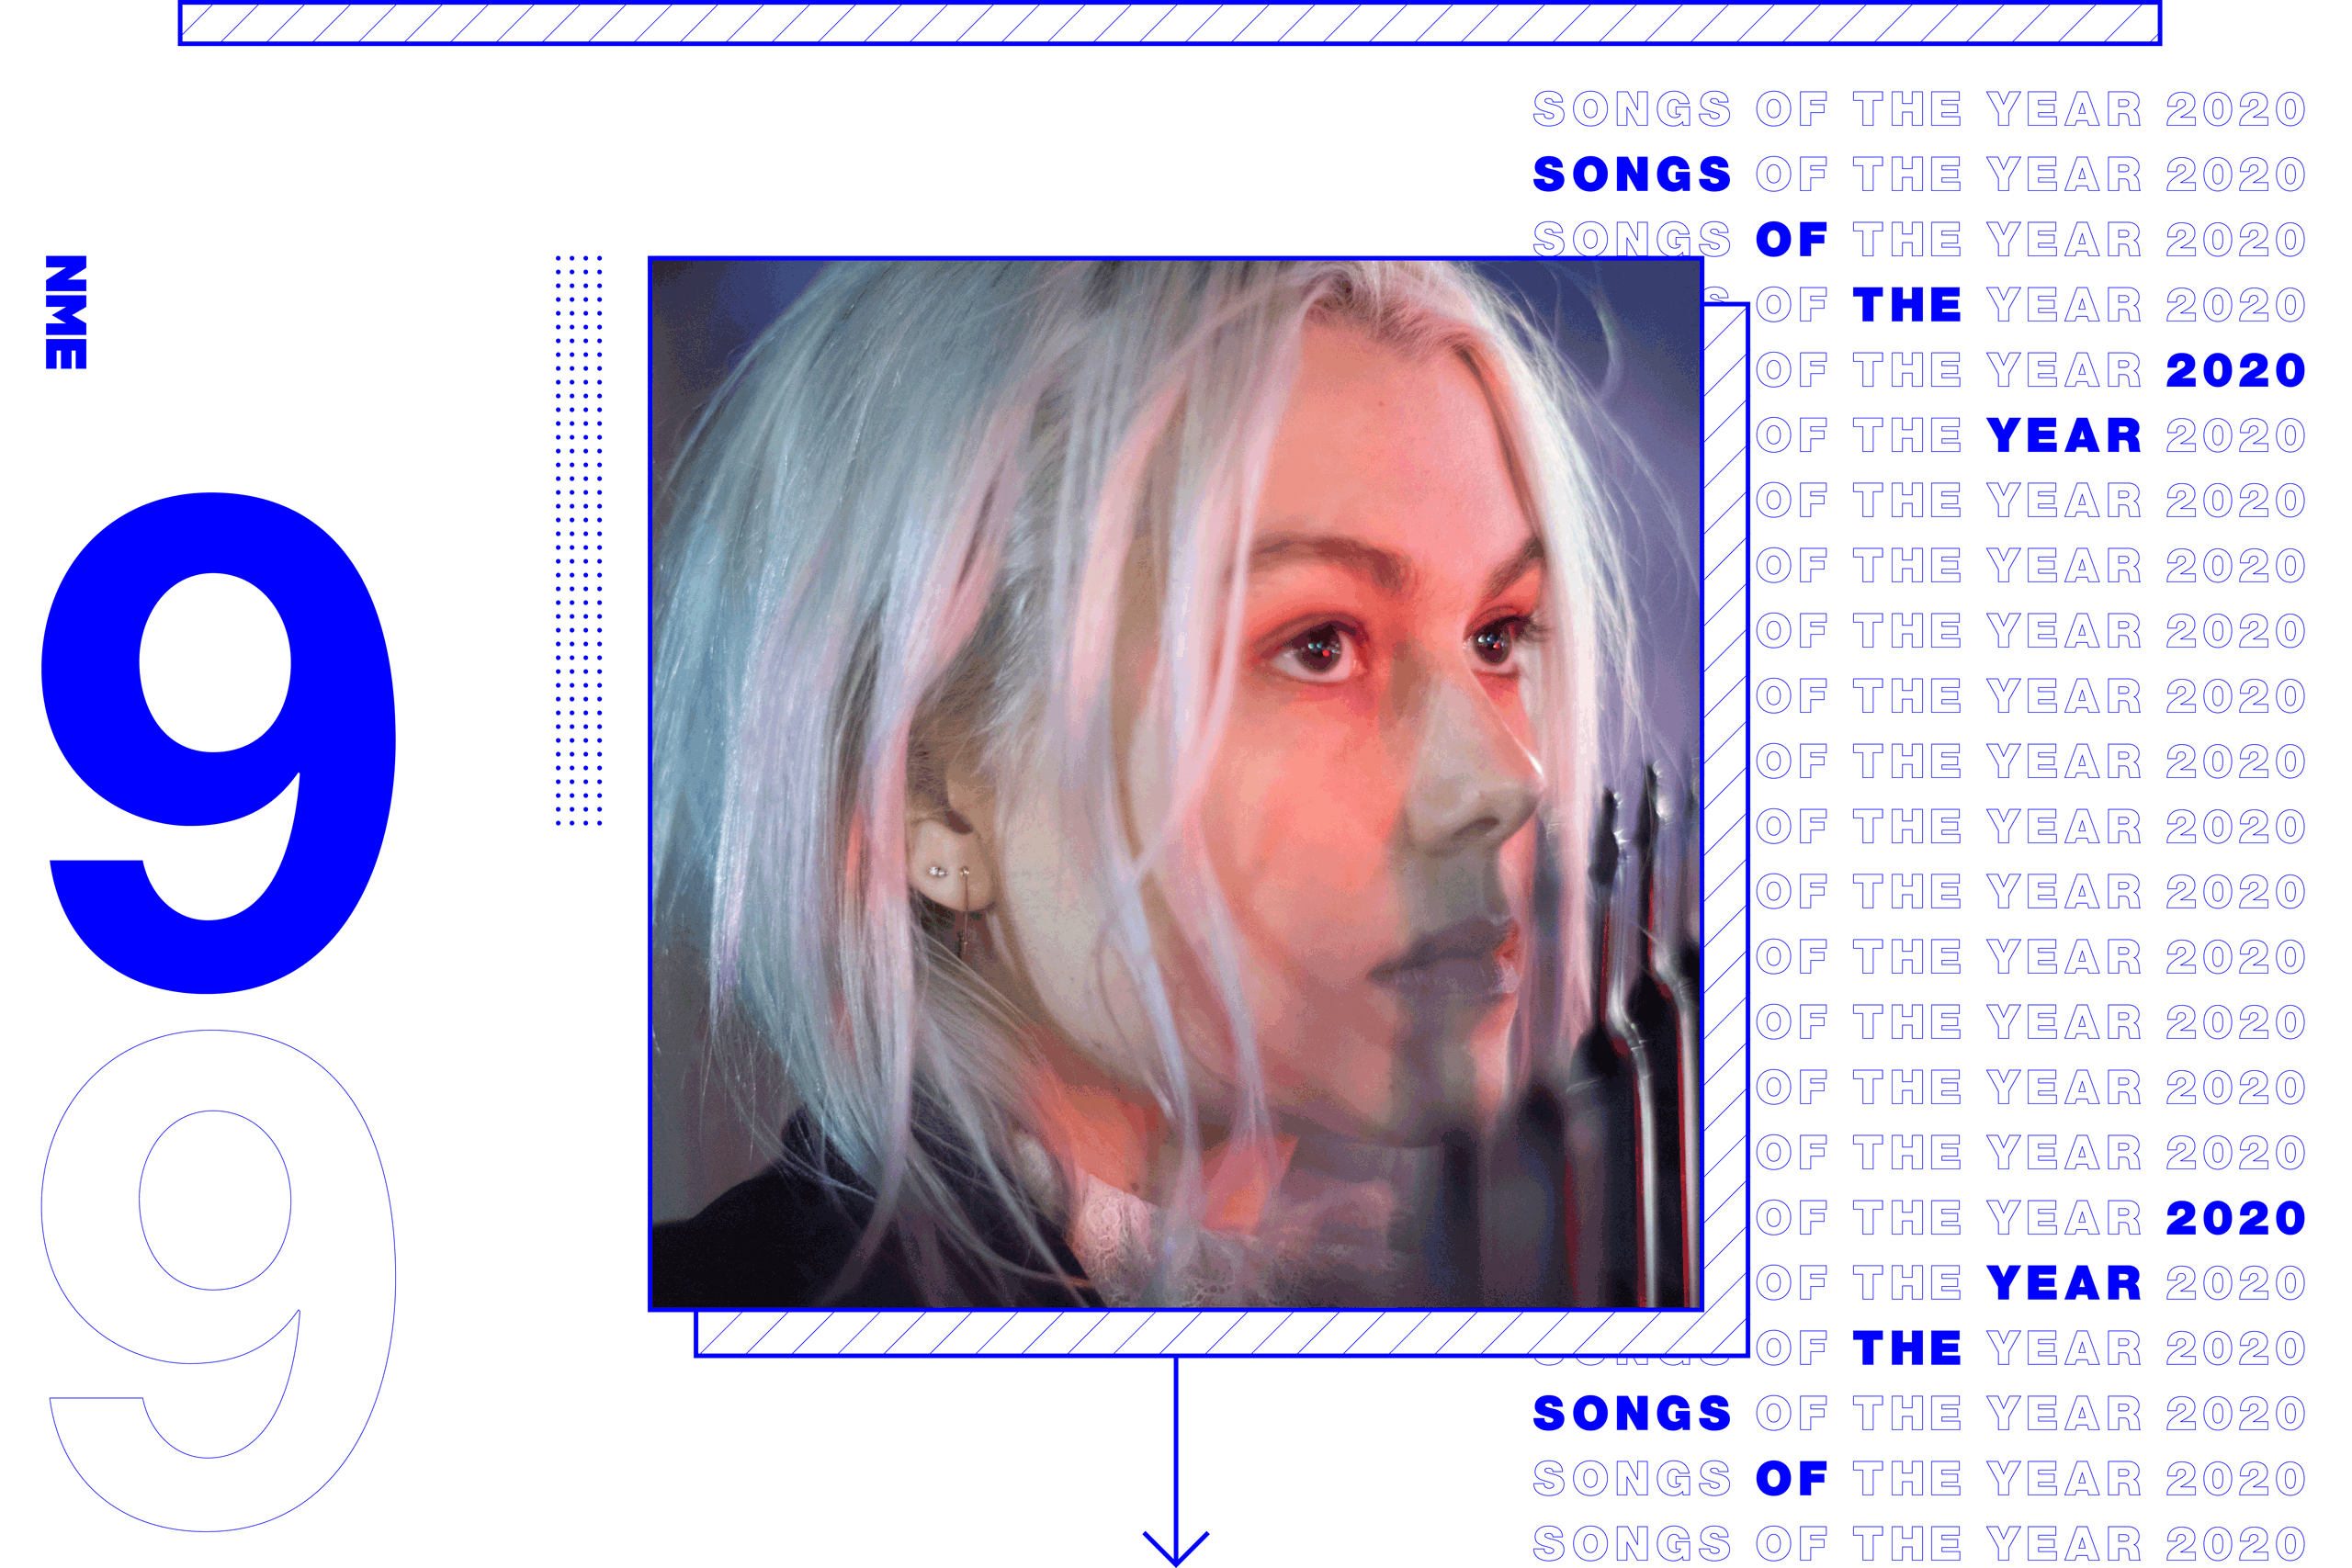 nme songs of the year Phoebe Bridgers – 'I Know The End'